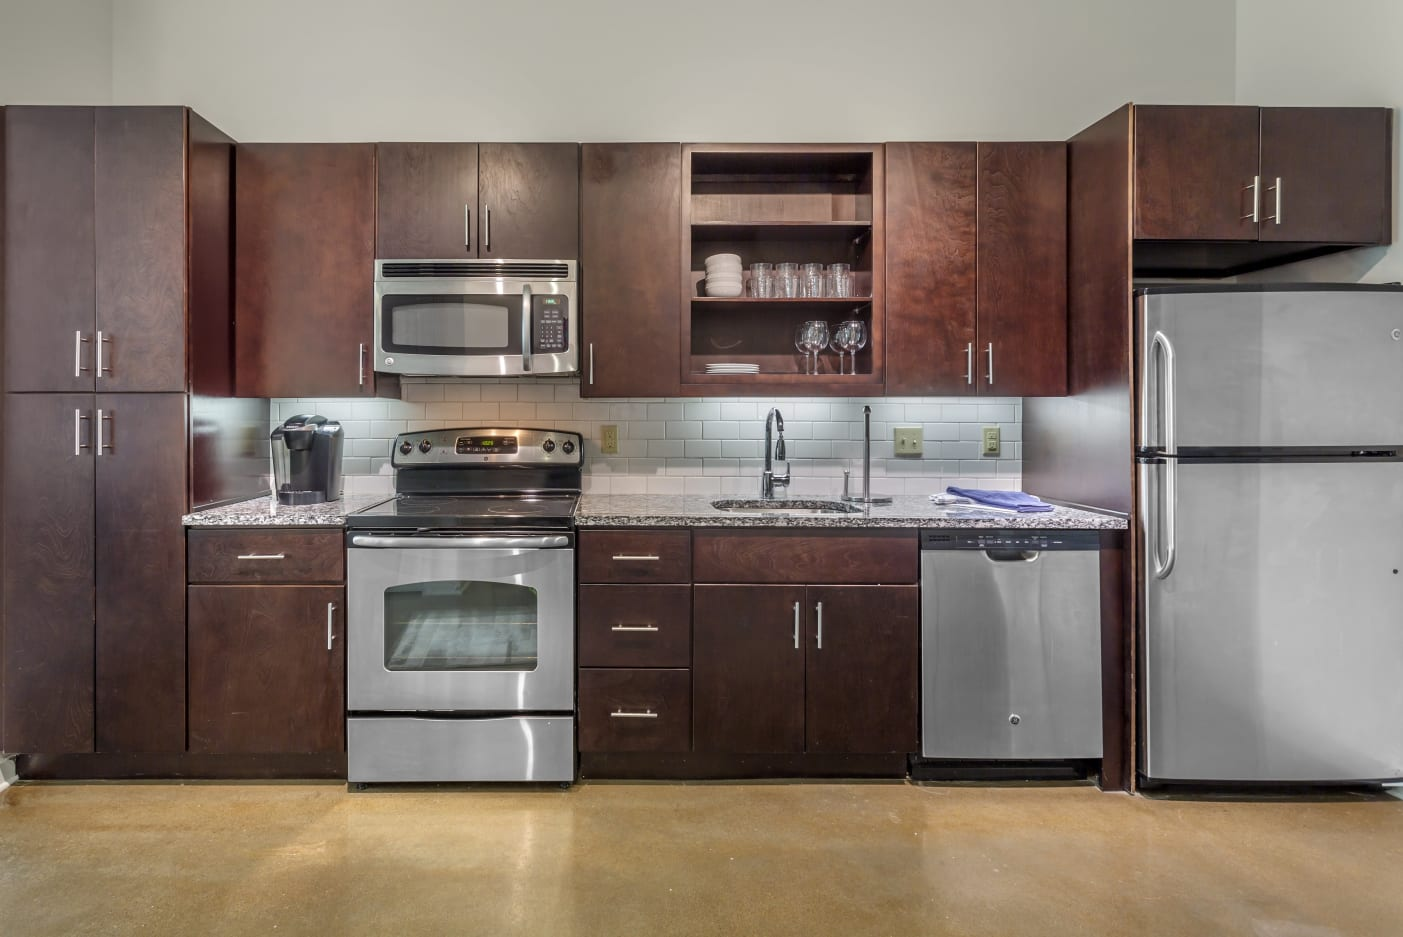 Custom kitchen cabinets at 12 South Apartments